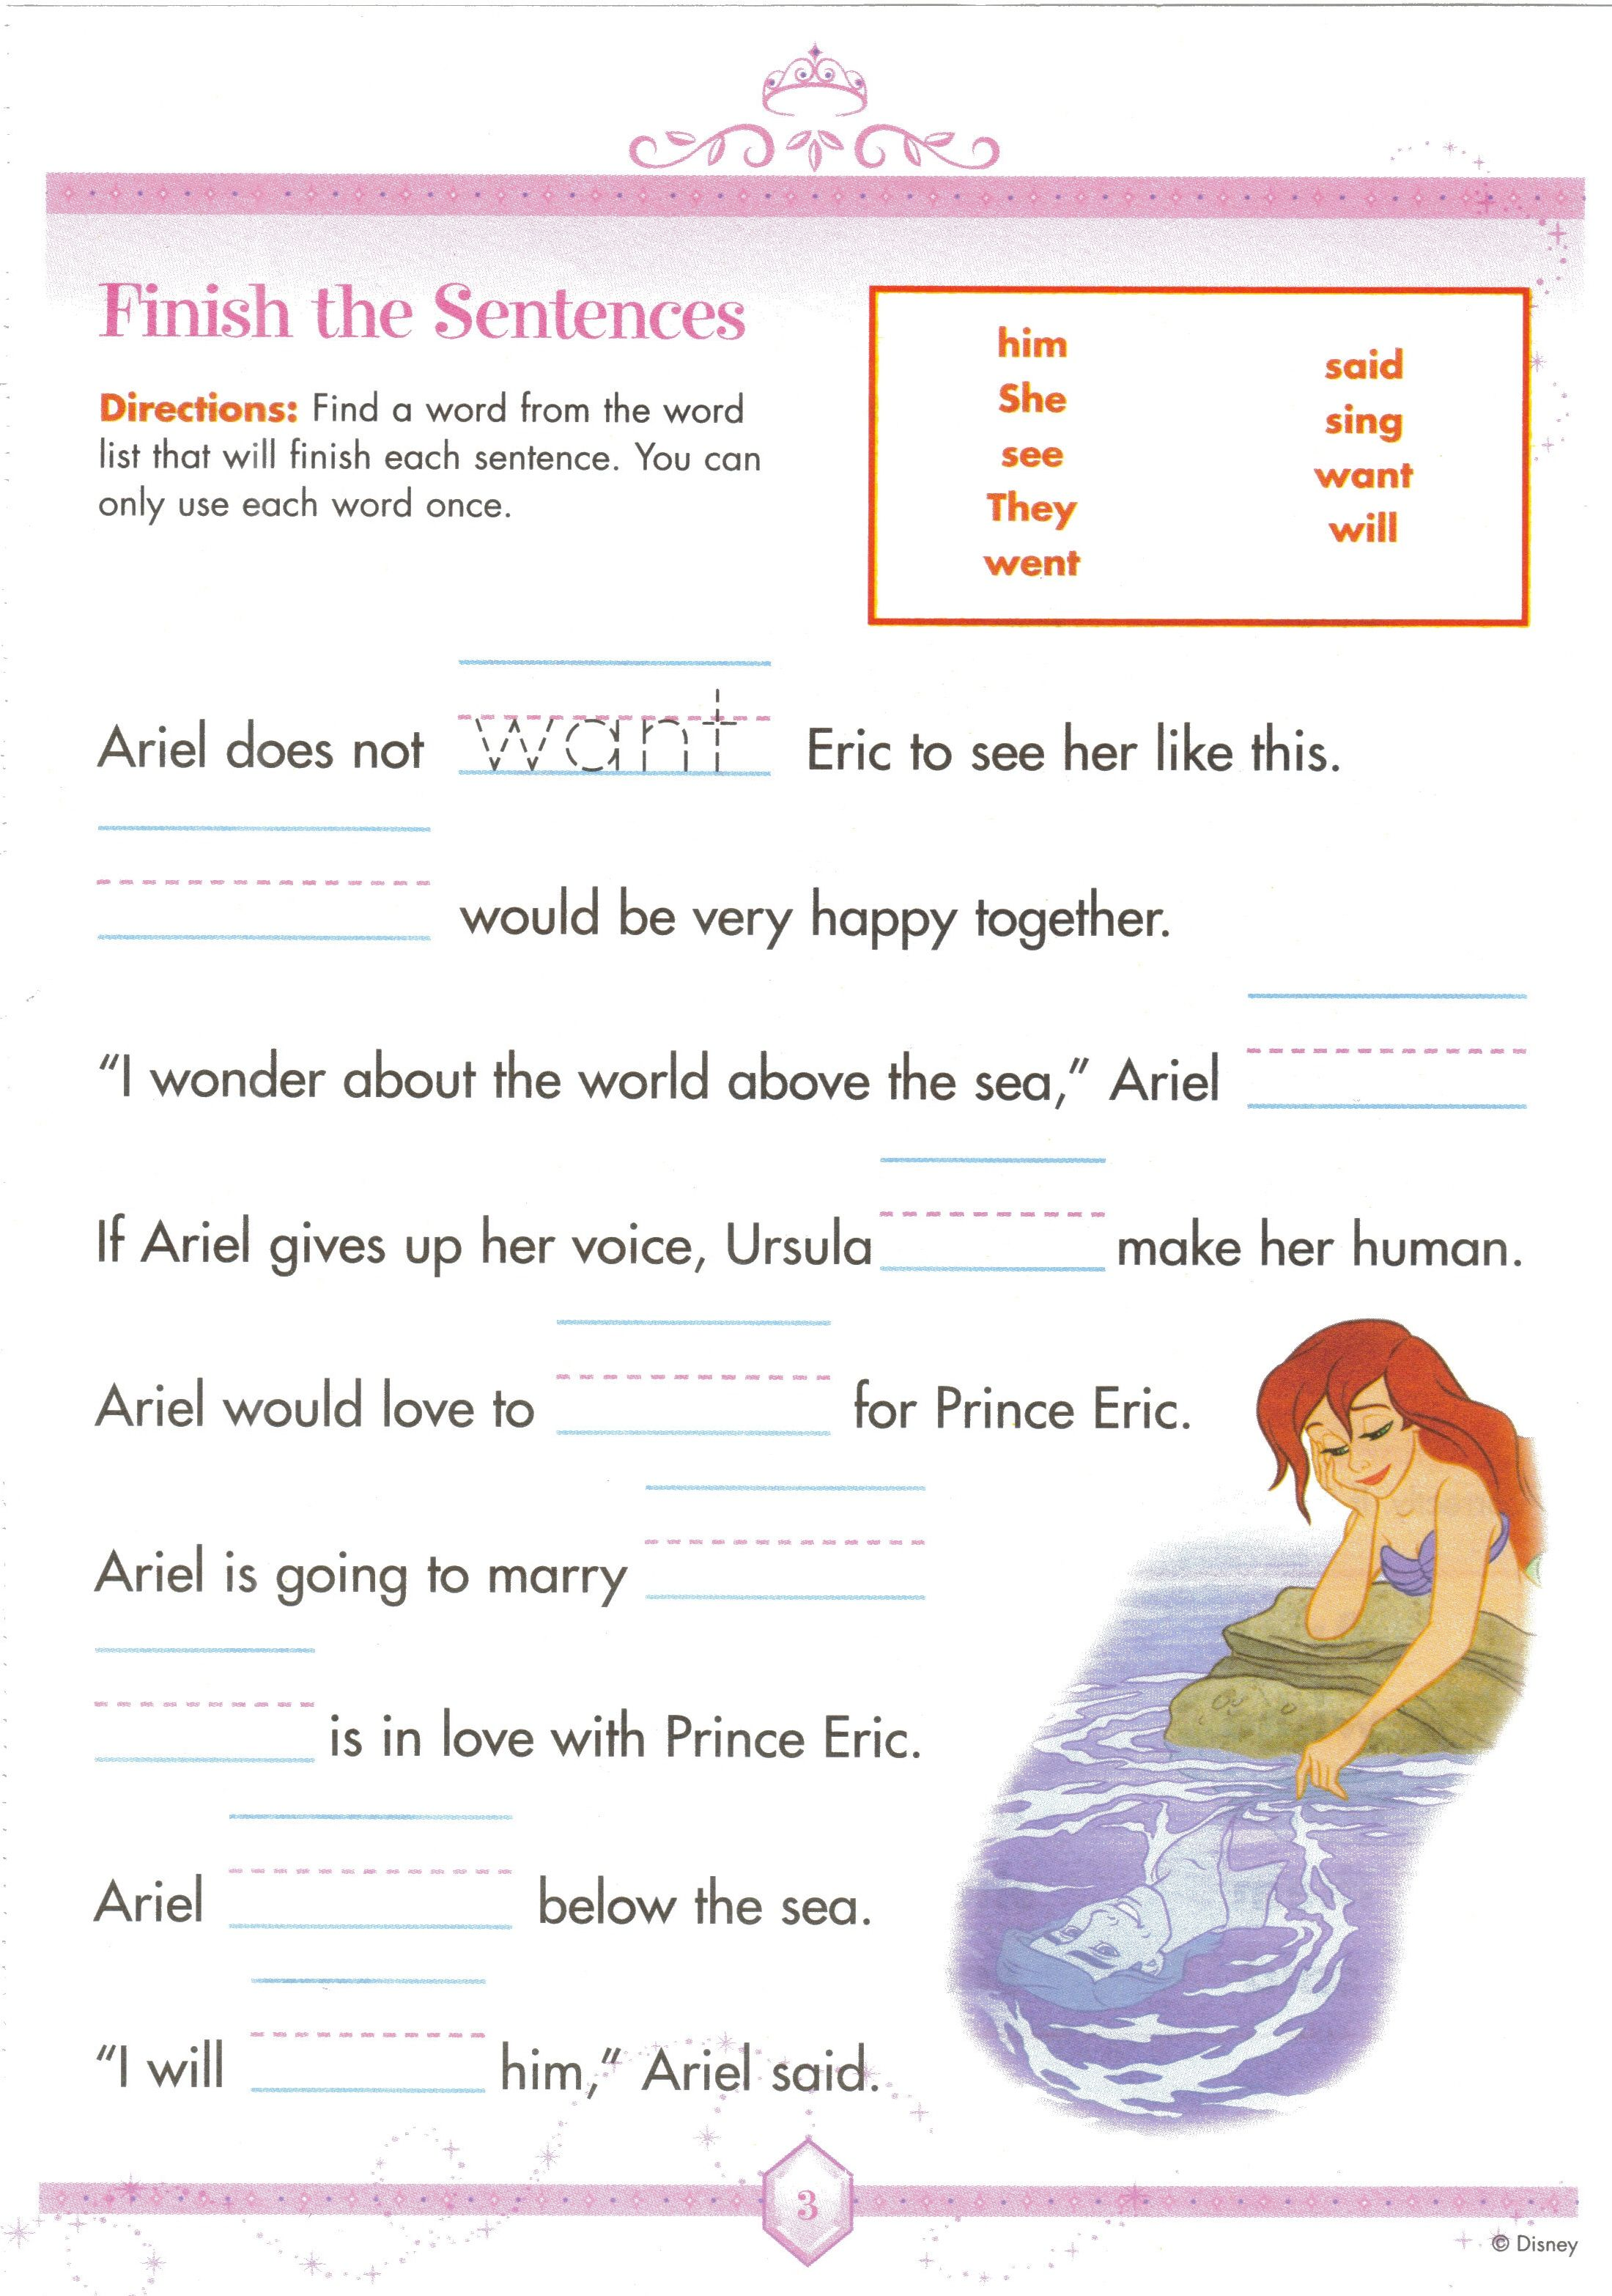 Weirdmailus  Terrific  Images About Worksheets On Pinterest  Fun Facts For Kids  With Goodlooking  Images About Worksheets On Pinterest  Fun Facts For Kids Earth Day Worksheets And Jungles With Nice Rd Grade English Grammar Worksheets Also Thankgiving Worksheets In Addition Story Brainstorming Worksheet And Getting The Main Idea Worksheets For Grade  As Well As Be Verbs Worksheets Additionally Crosswords Worksheets From Pinterestcom With Weirdmailus  Goodlooking  Images About Worksheets On Pinterest  Fun Facts For Kids  With Nice  Images About Worksheets On Pinterest  Fun Facts For Kids Earth Day Worksheets And Jungles And Terrific Rd Grade English Grammar Worksheets Also Thankgiving Worksheets In Addition Story Brainstorming Worksheet From Pinterestcom